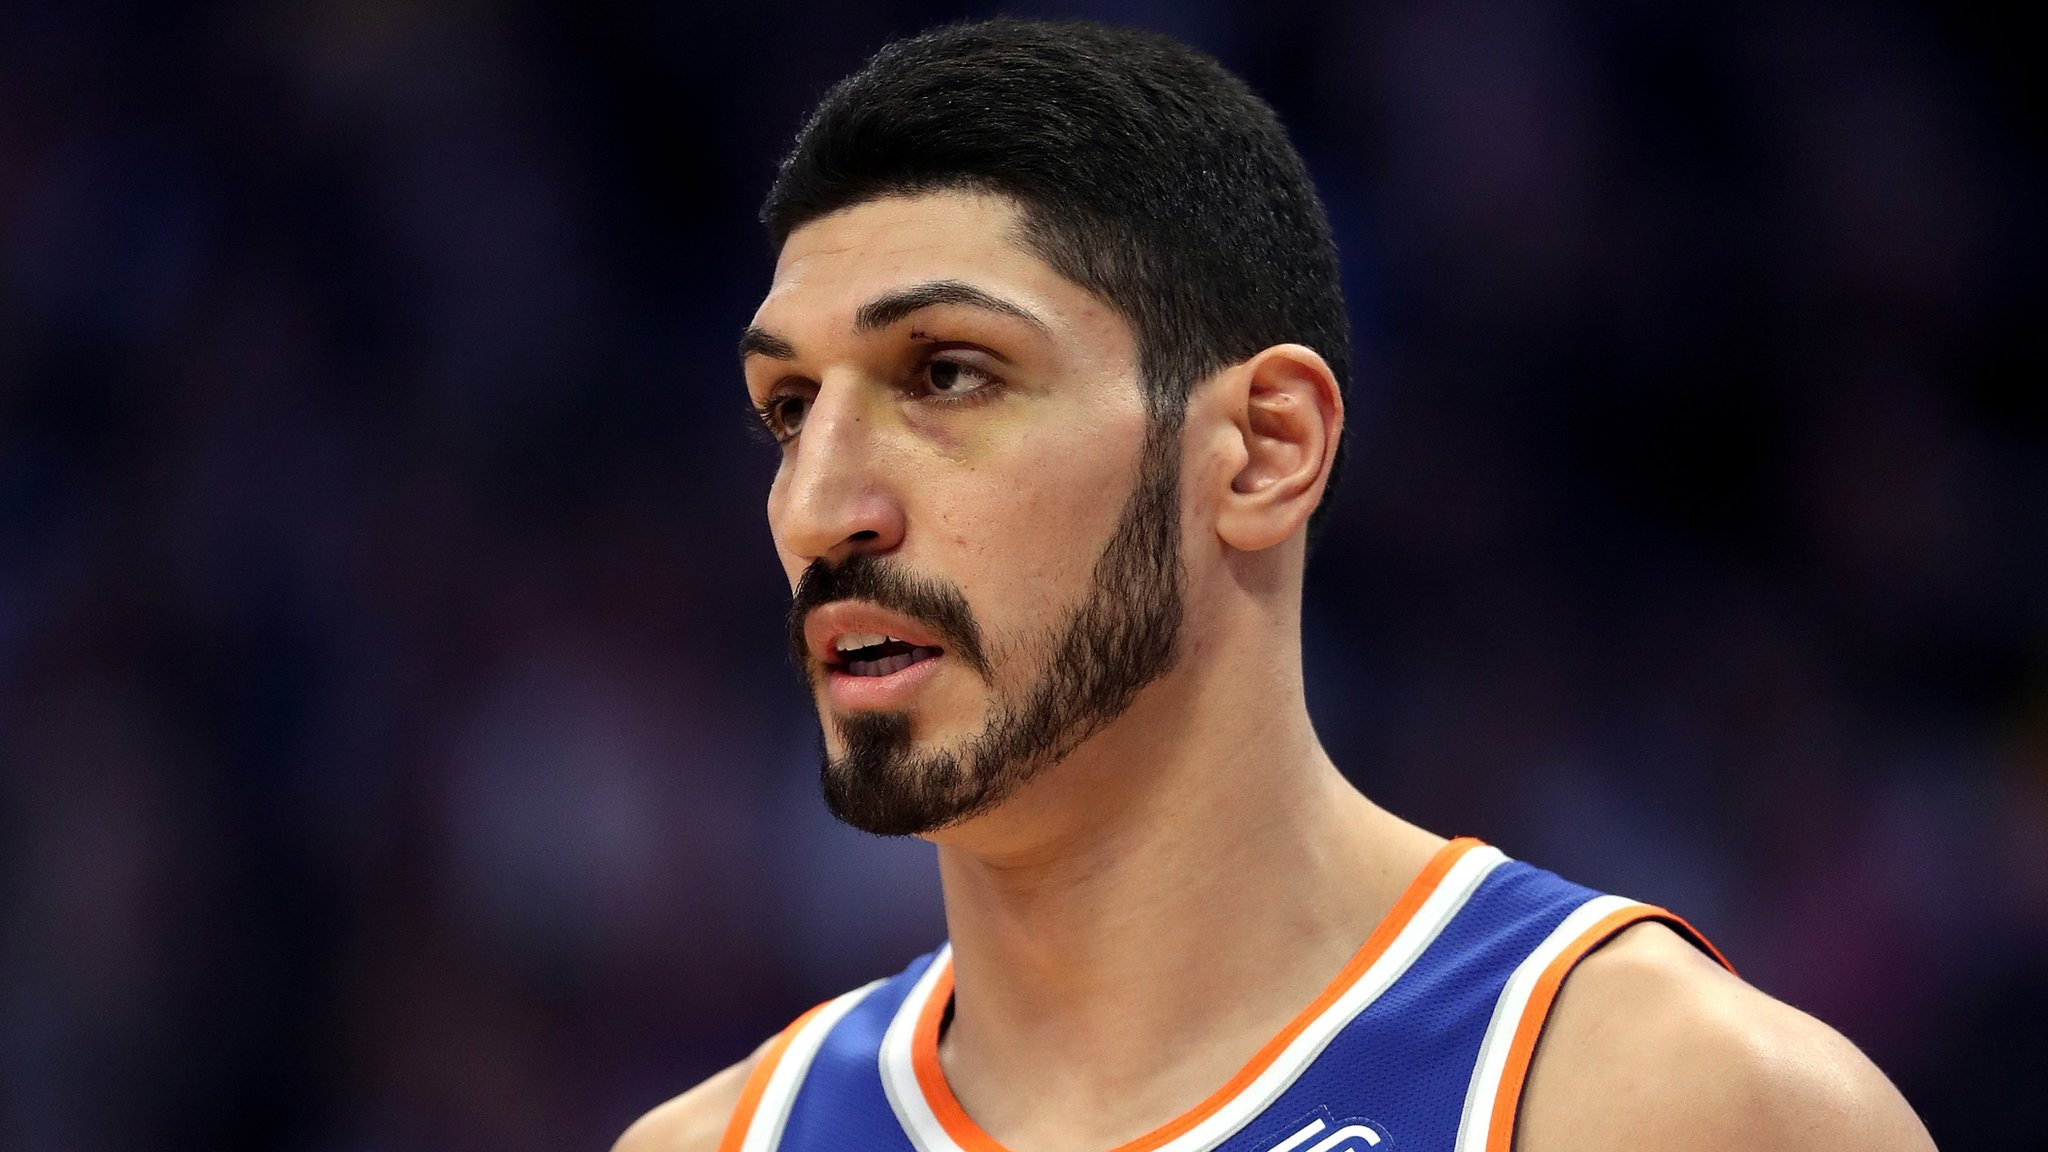 Enes Kanter: New York Knicks centre says he is trapped in US